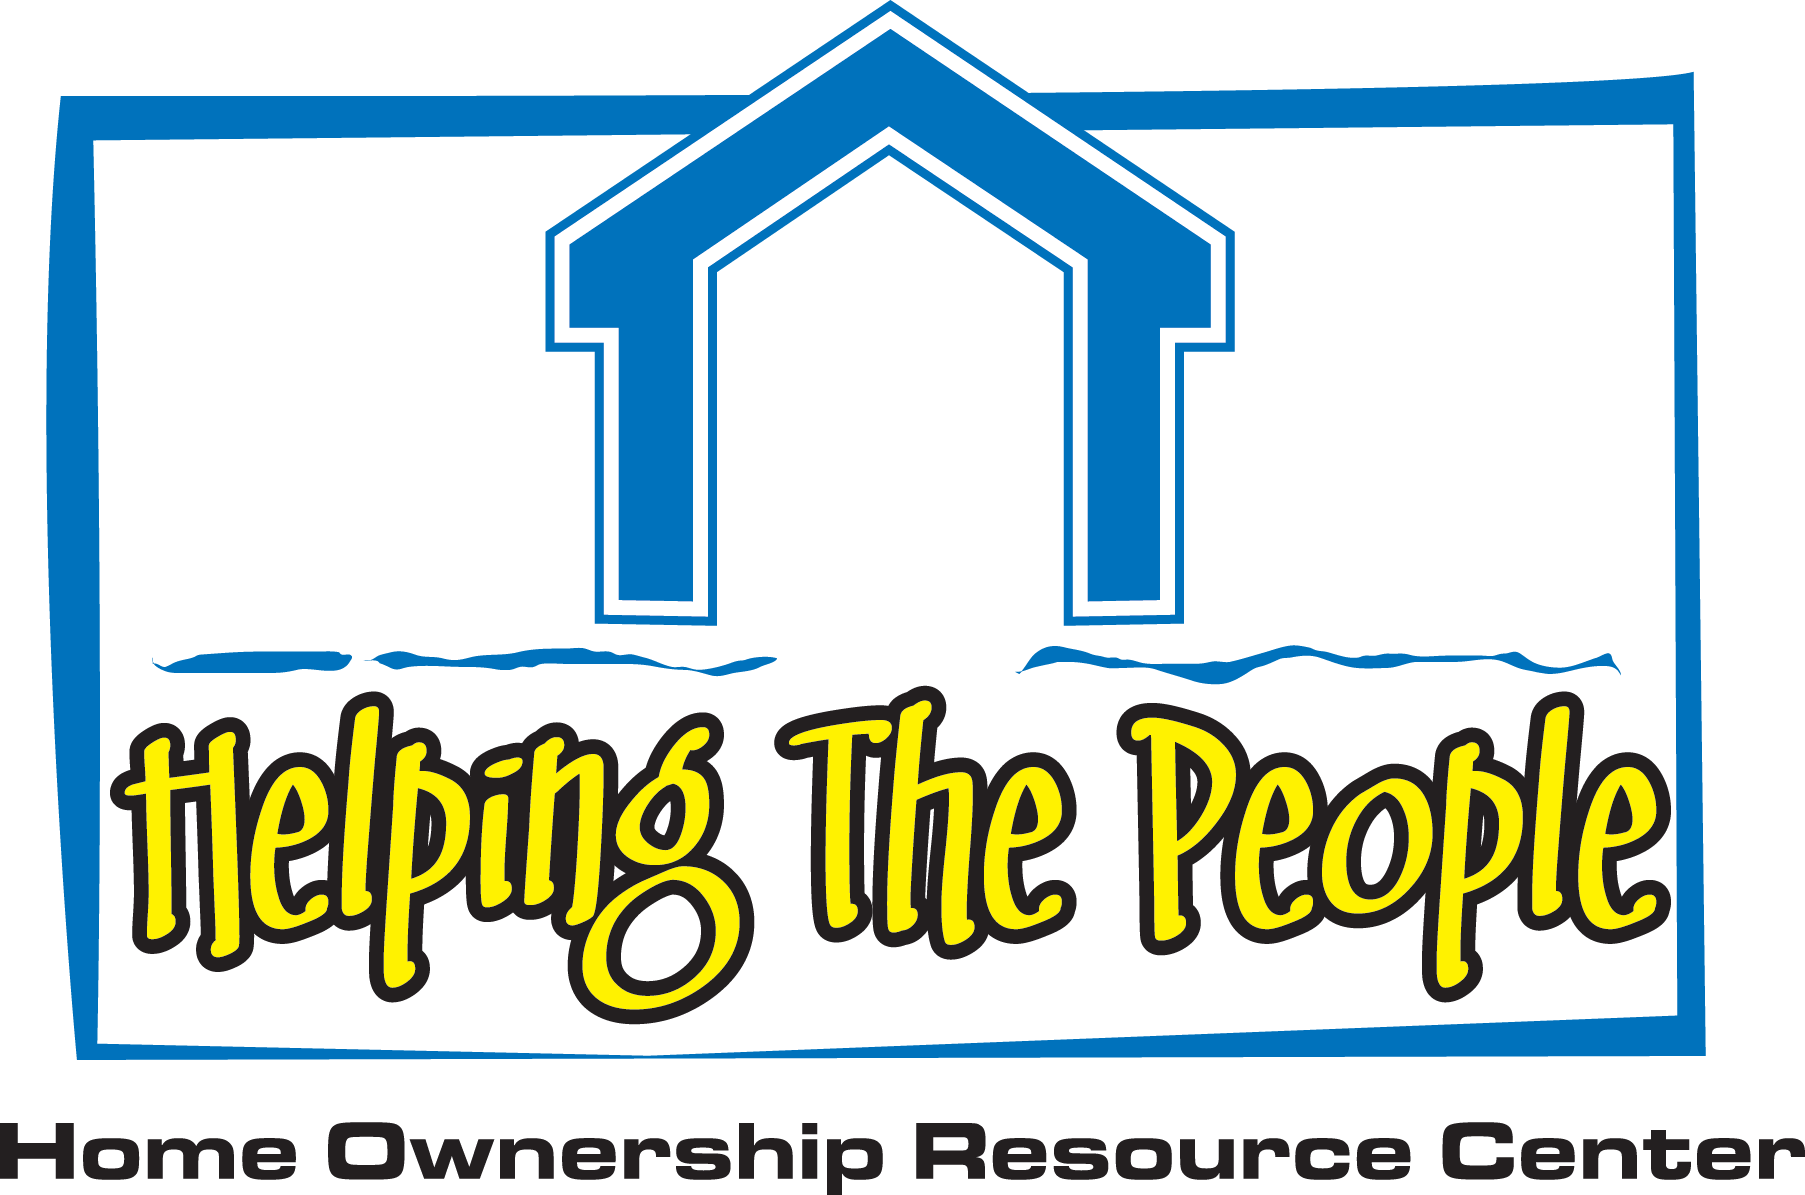 Helping The People logo - PNG FORMAT